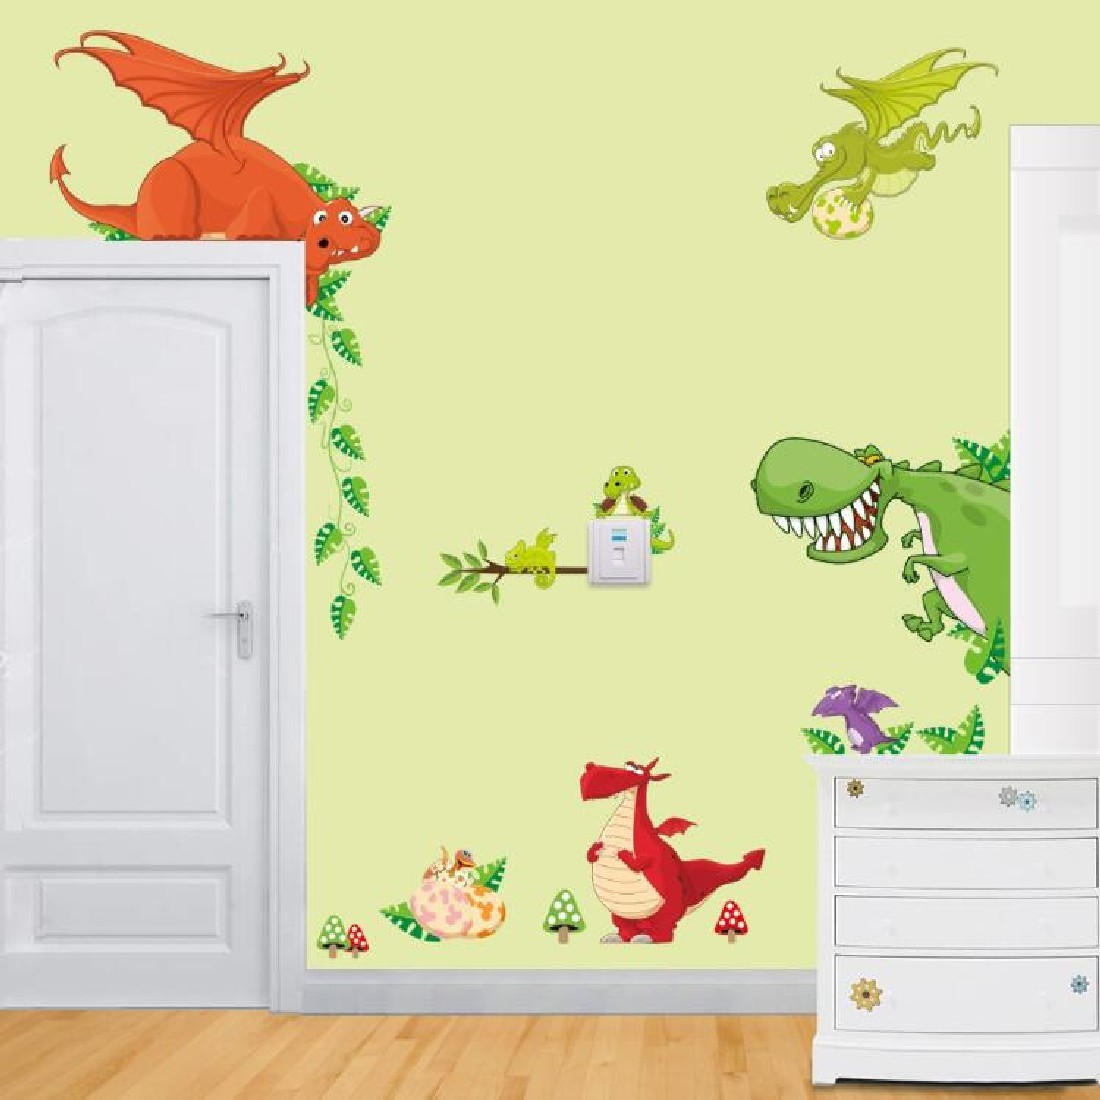 Online shop removable diy mural wallpaper forest animals big shark online shop removable diy mural wallpaper forest animals big shark dinosaurs elephant horse giraffe wall stickers kids for home decoration aliexpress amipublicfo Images